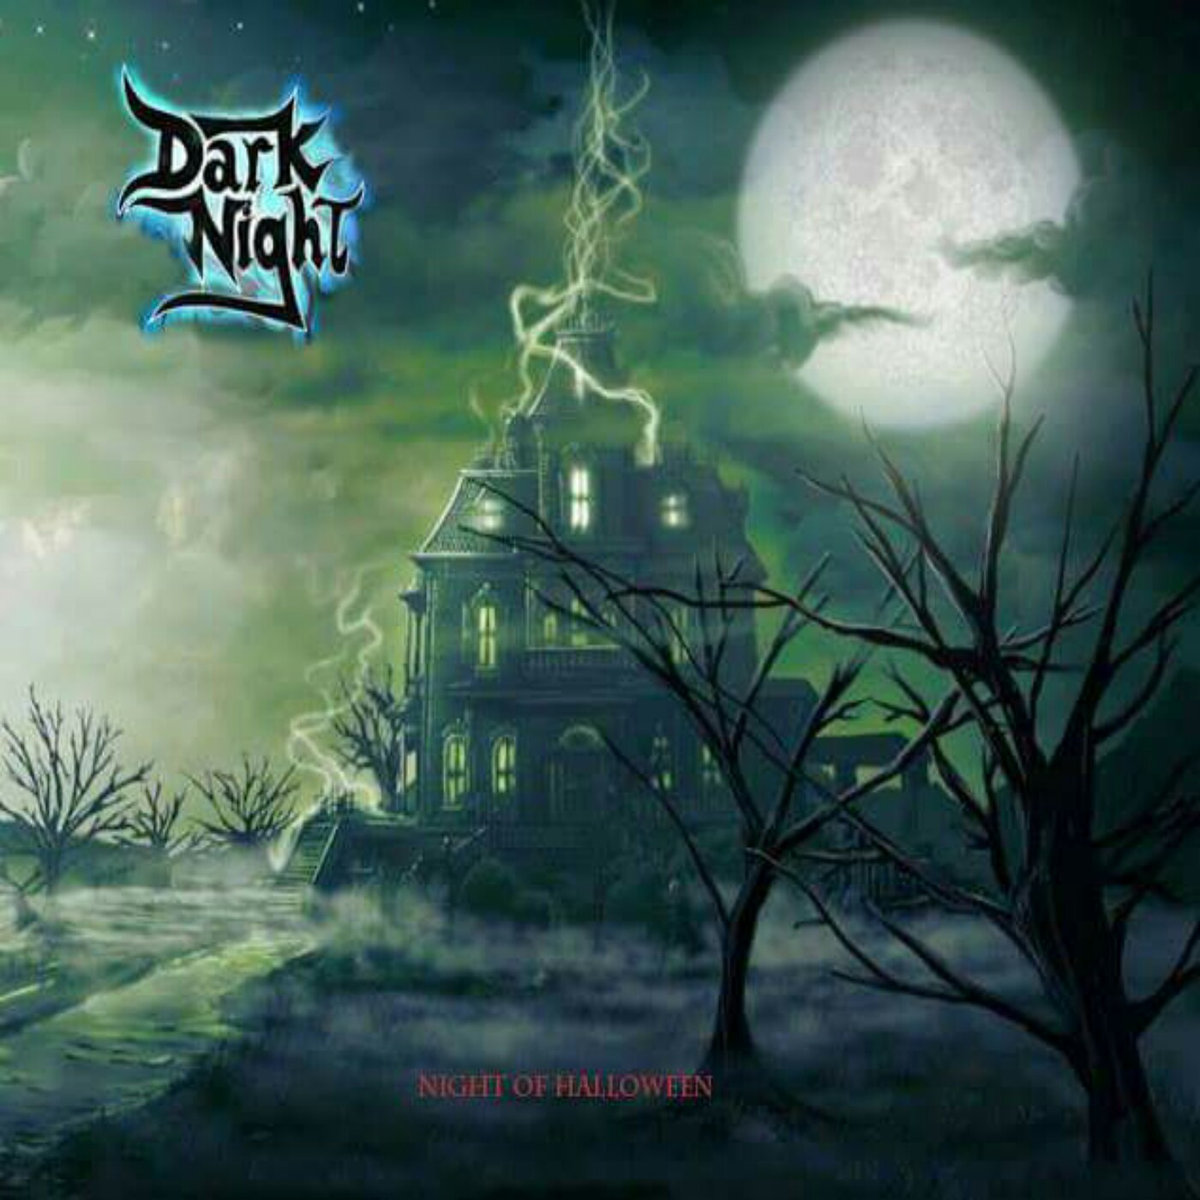 Dark Night Night Of Halloween Cd Or Digital Vision